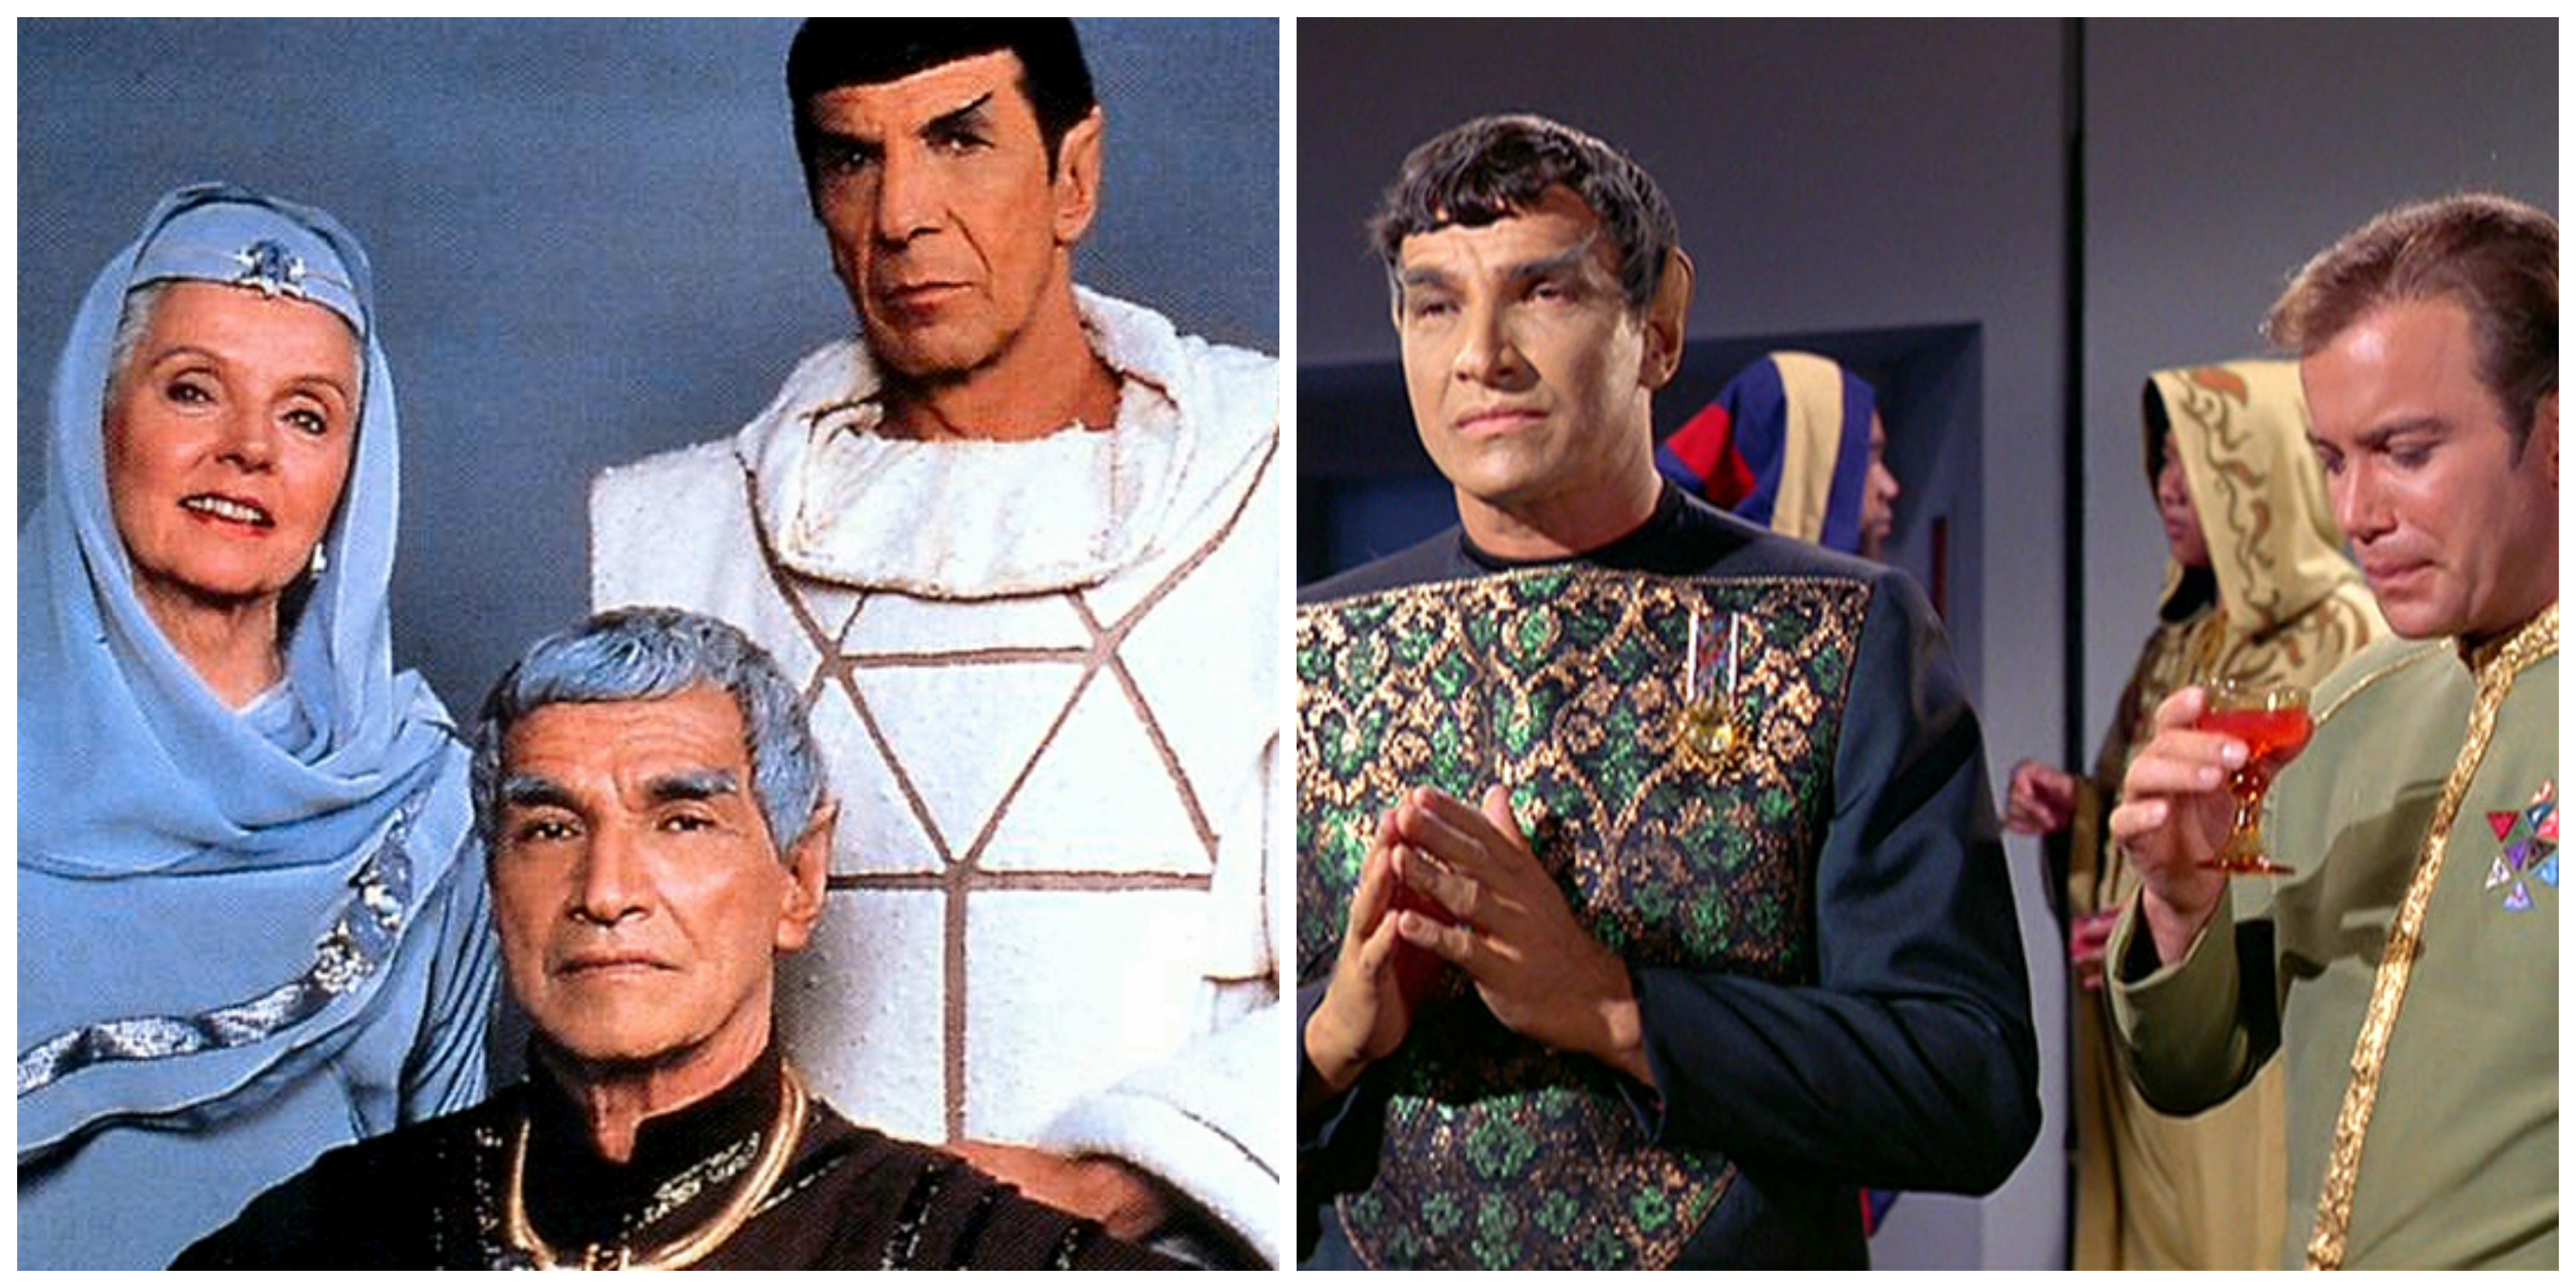 LEFT: Amanda, Sarek and their son, Spock. RIGHT: Sarek and Captain Kirk back in the day.